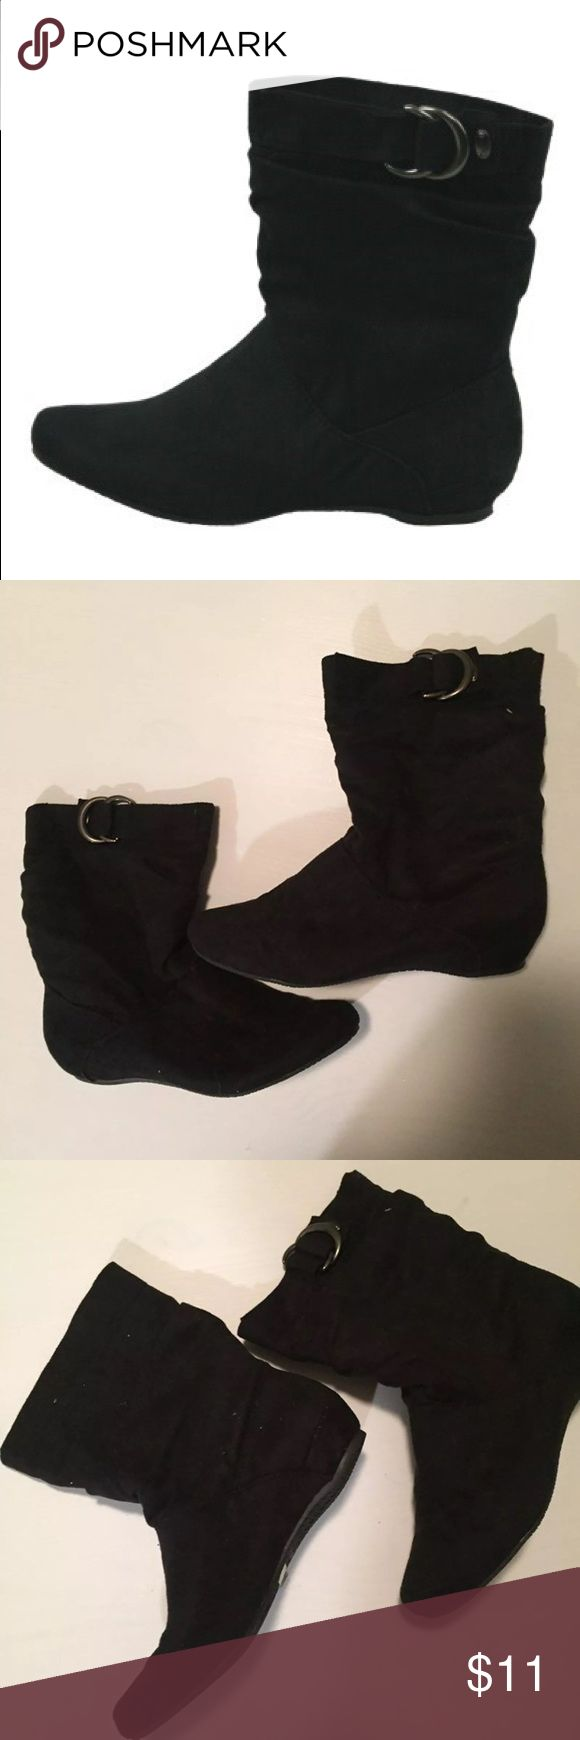 Black Faux Suede bootie Black suede-like slip on flat boots Sizes available in 6 - 6.5 - 8 - 8.5 - 9 - 10 — brand is capella  *We are a small boutique in central PA that has recently closed - EVERYTHING is new with tags - HAPPY SHOPPING!!:) —ask any questions - we love bundles ! DIAA Shoes Ankle Boots & Booties